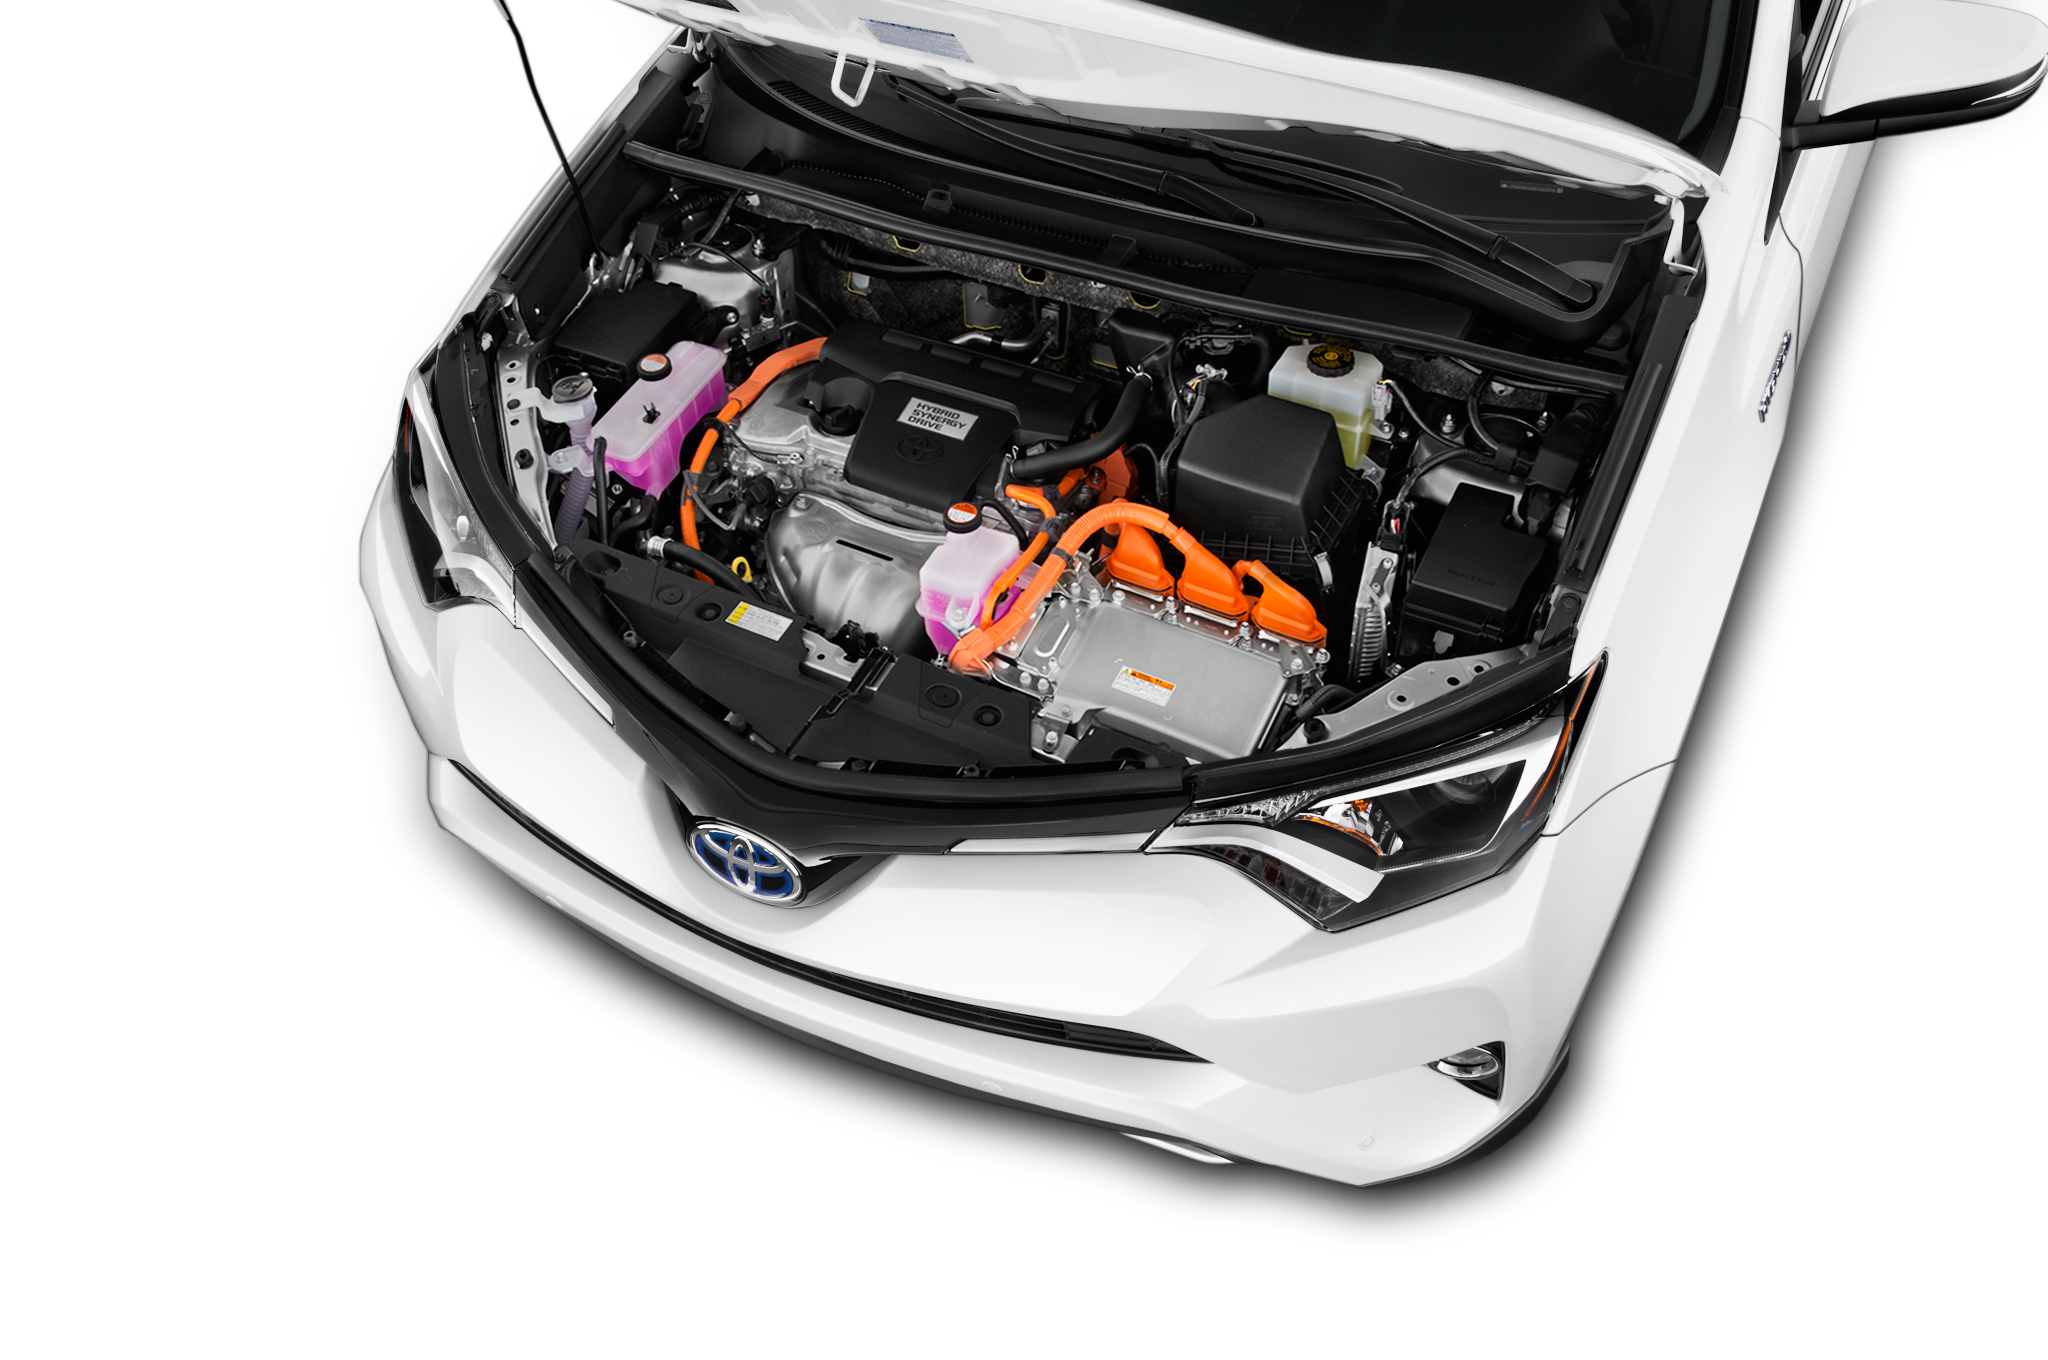 toyota rav reviews. Transparent engine hybrid jpg freeuse download